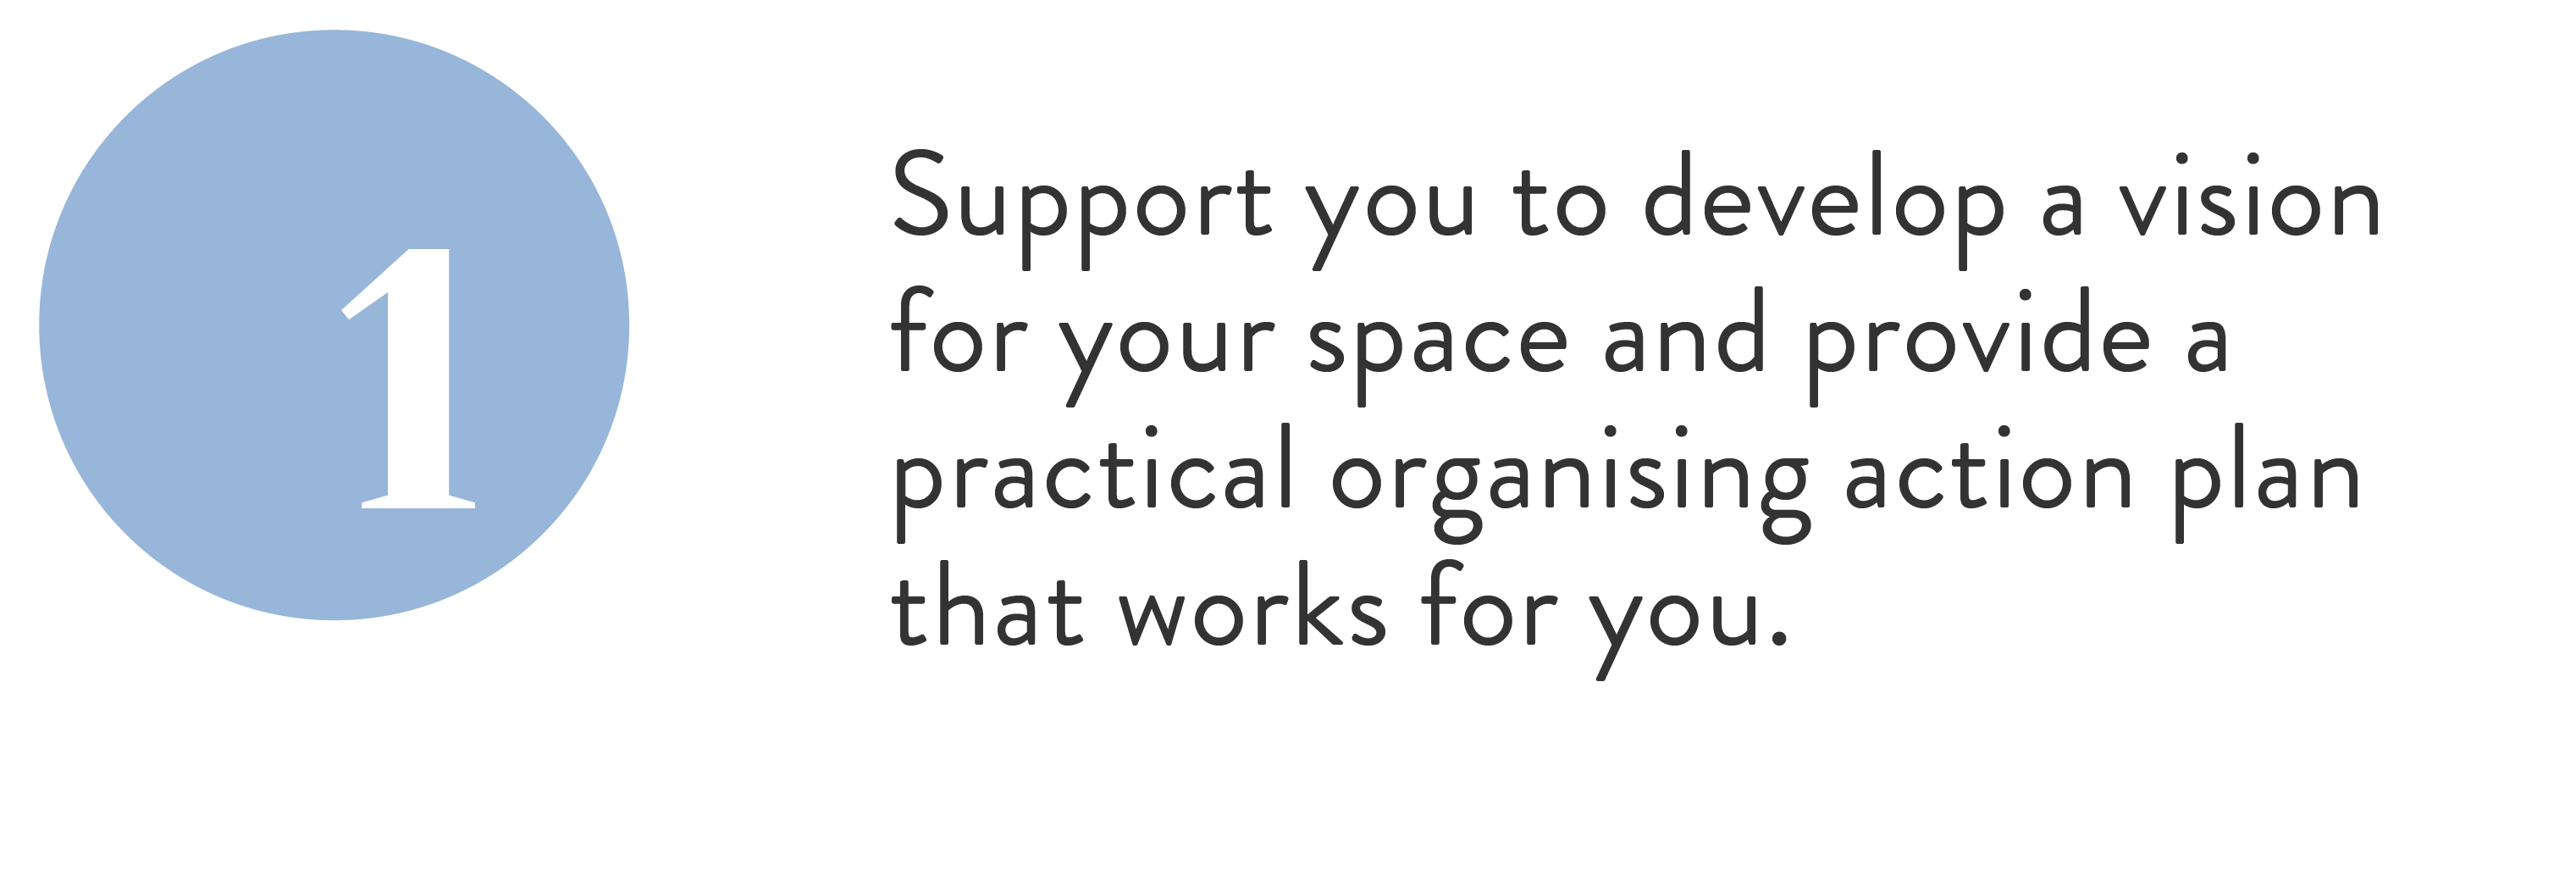 vision for your space